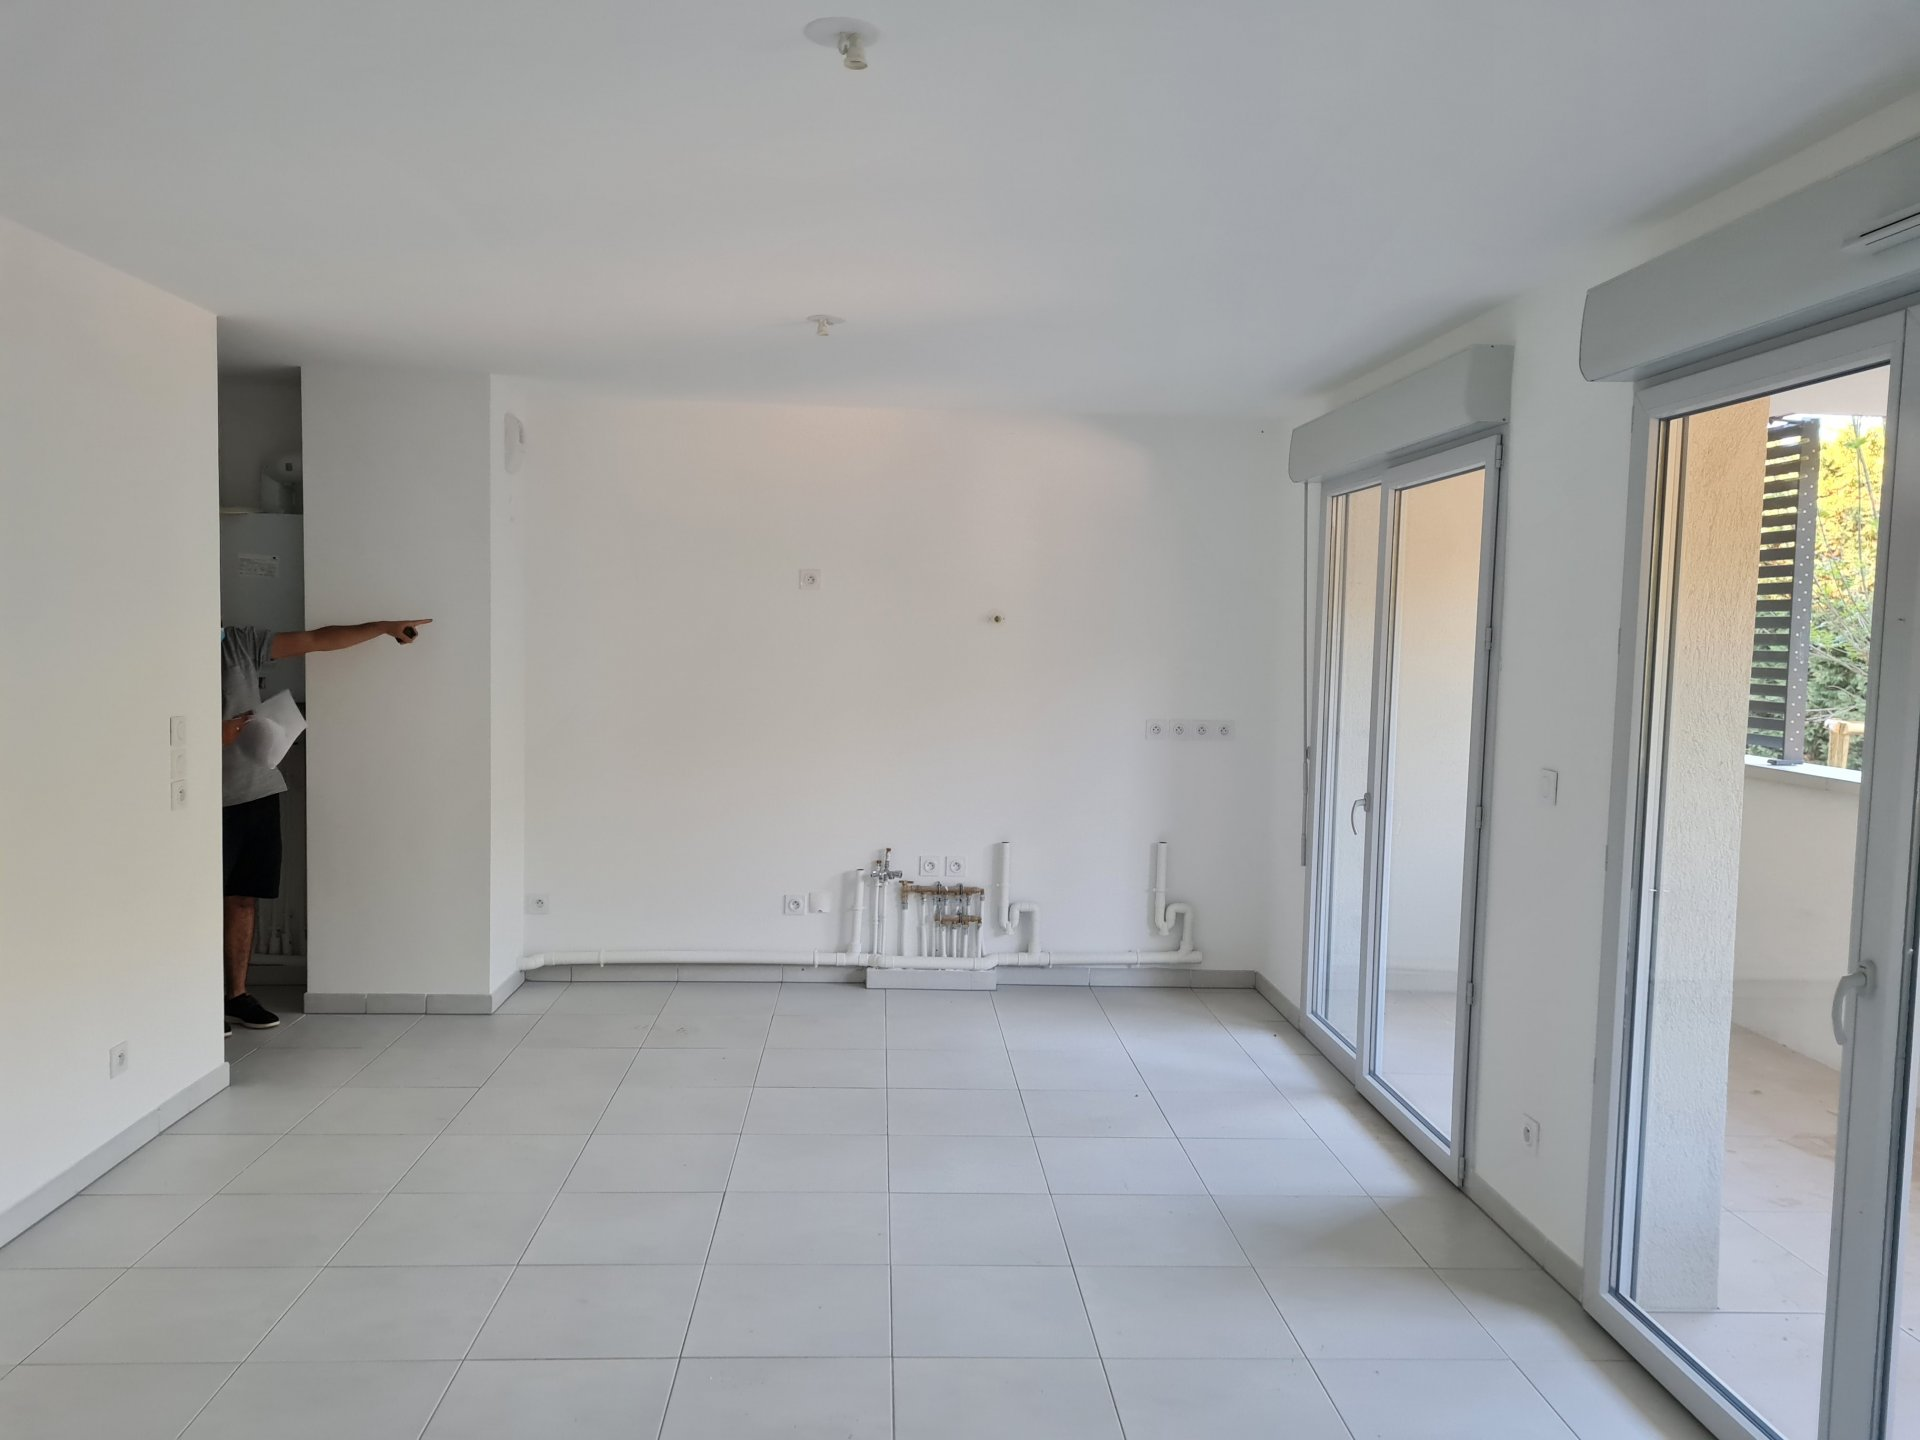 Appartement Type 2, 44.17, 1 chambre, terrasse, parking double